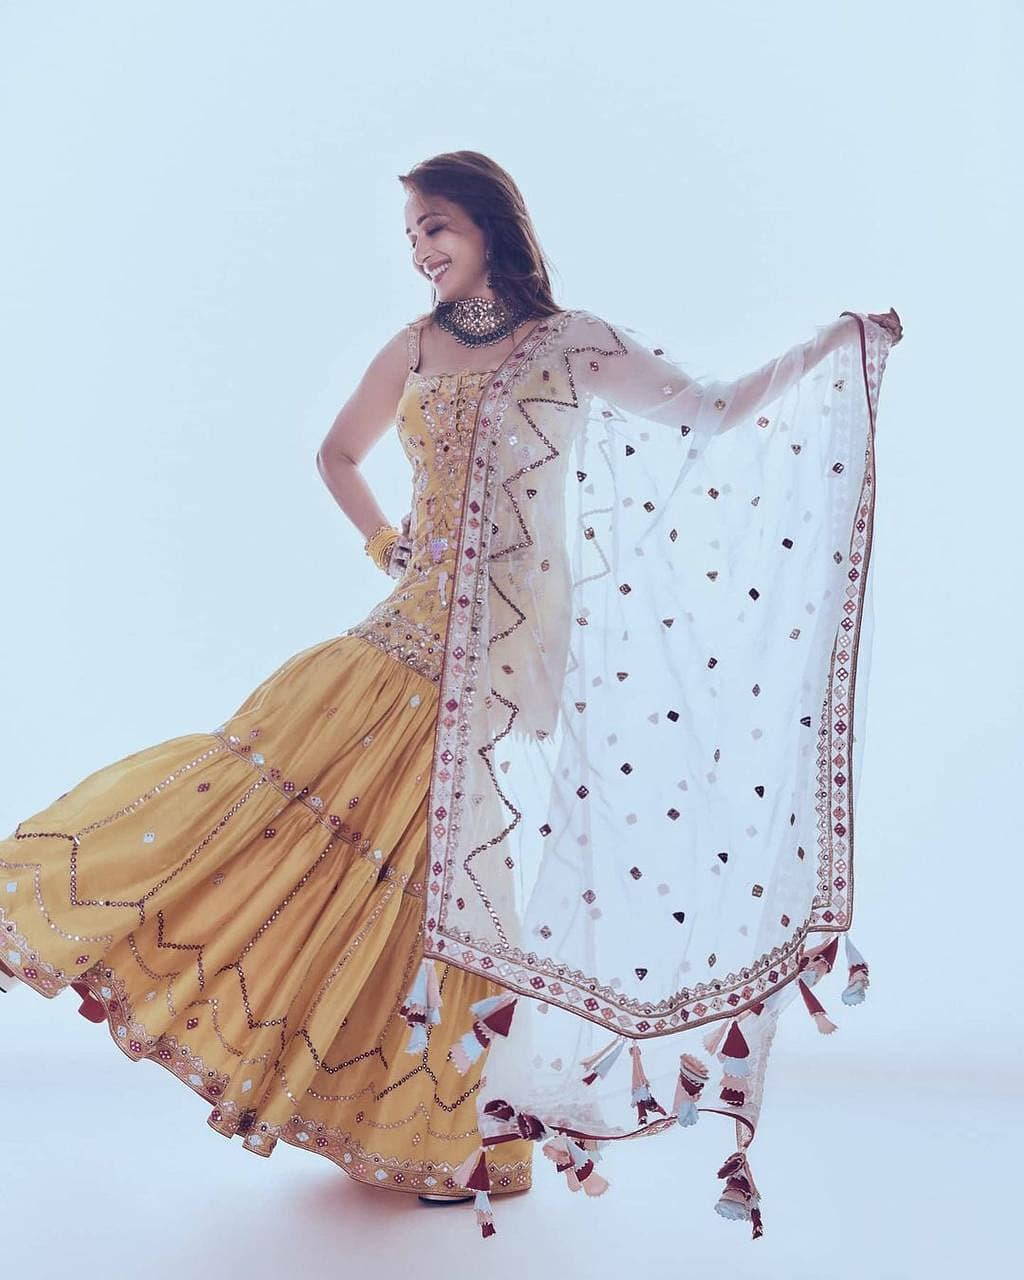 Madhuri Dixit Nene's Beautifully Embroidered Yellow Sharara Set Came With a Strappy Kurta